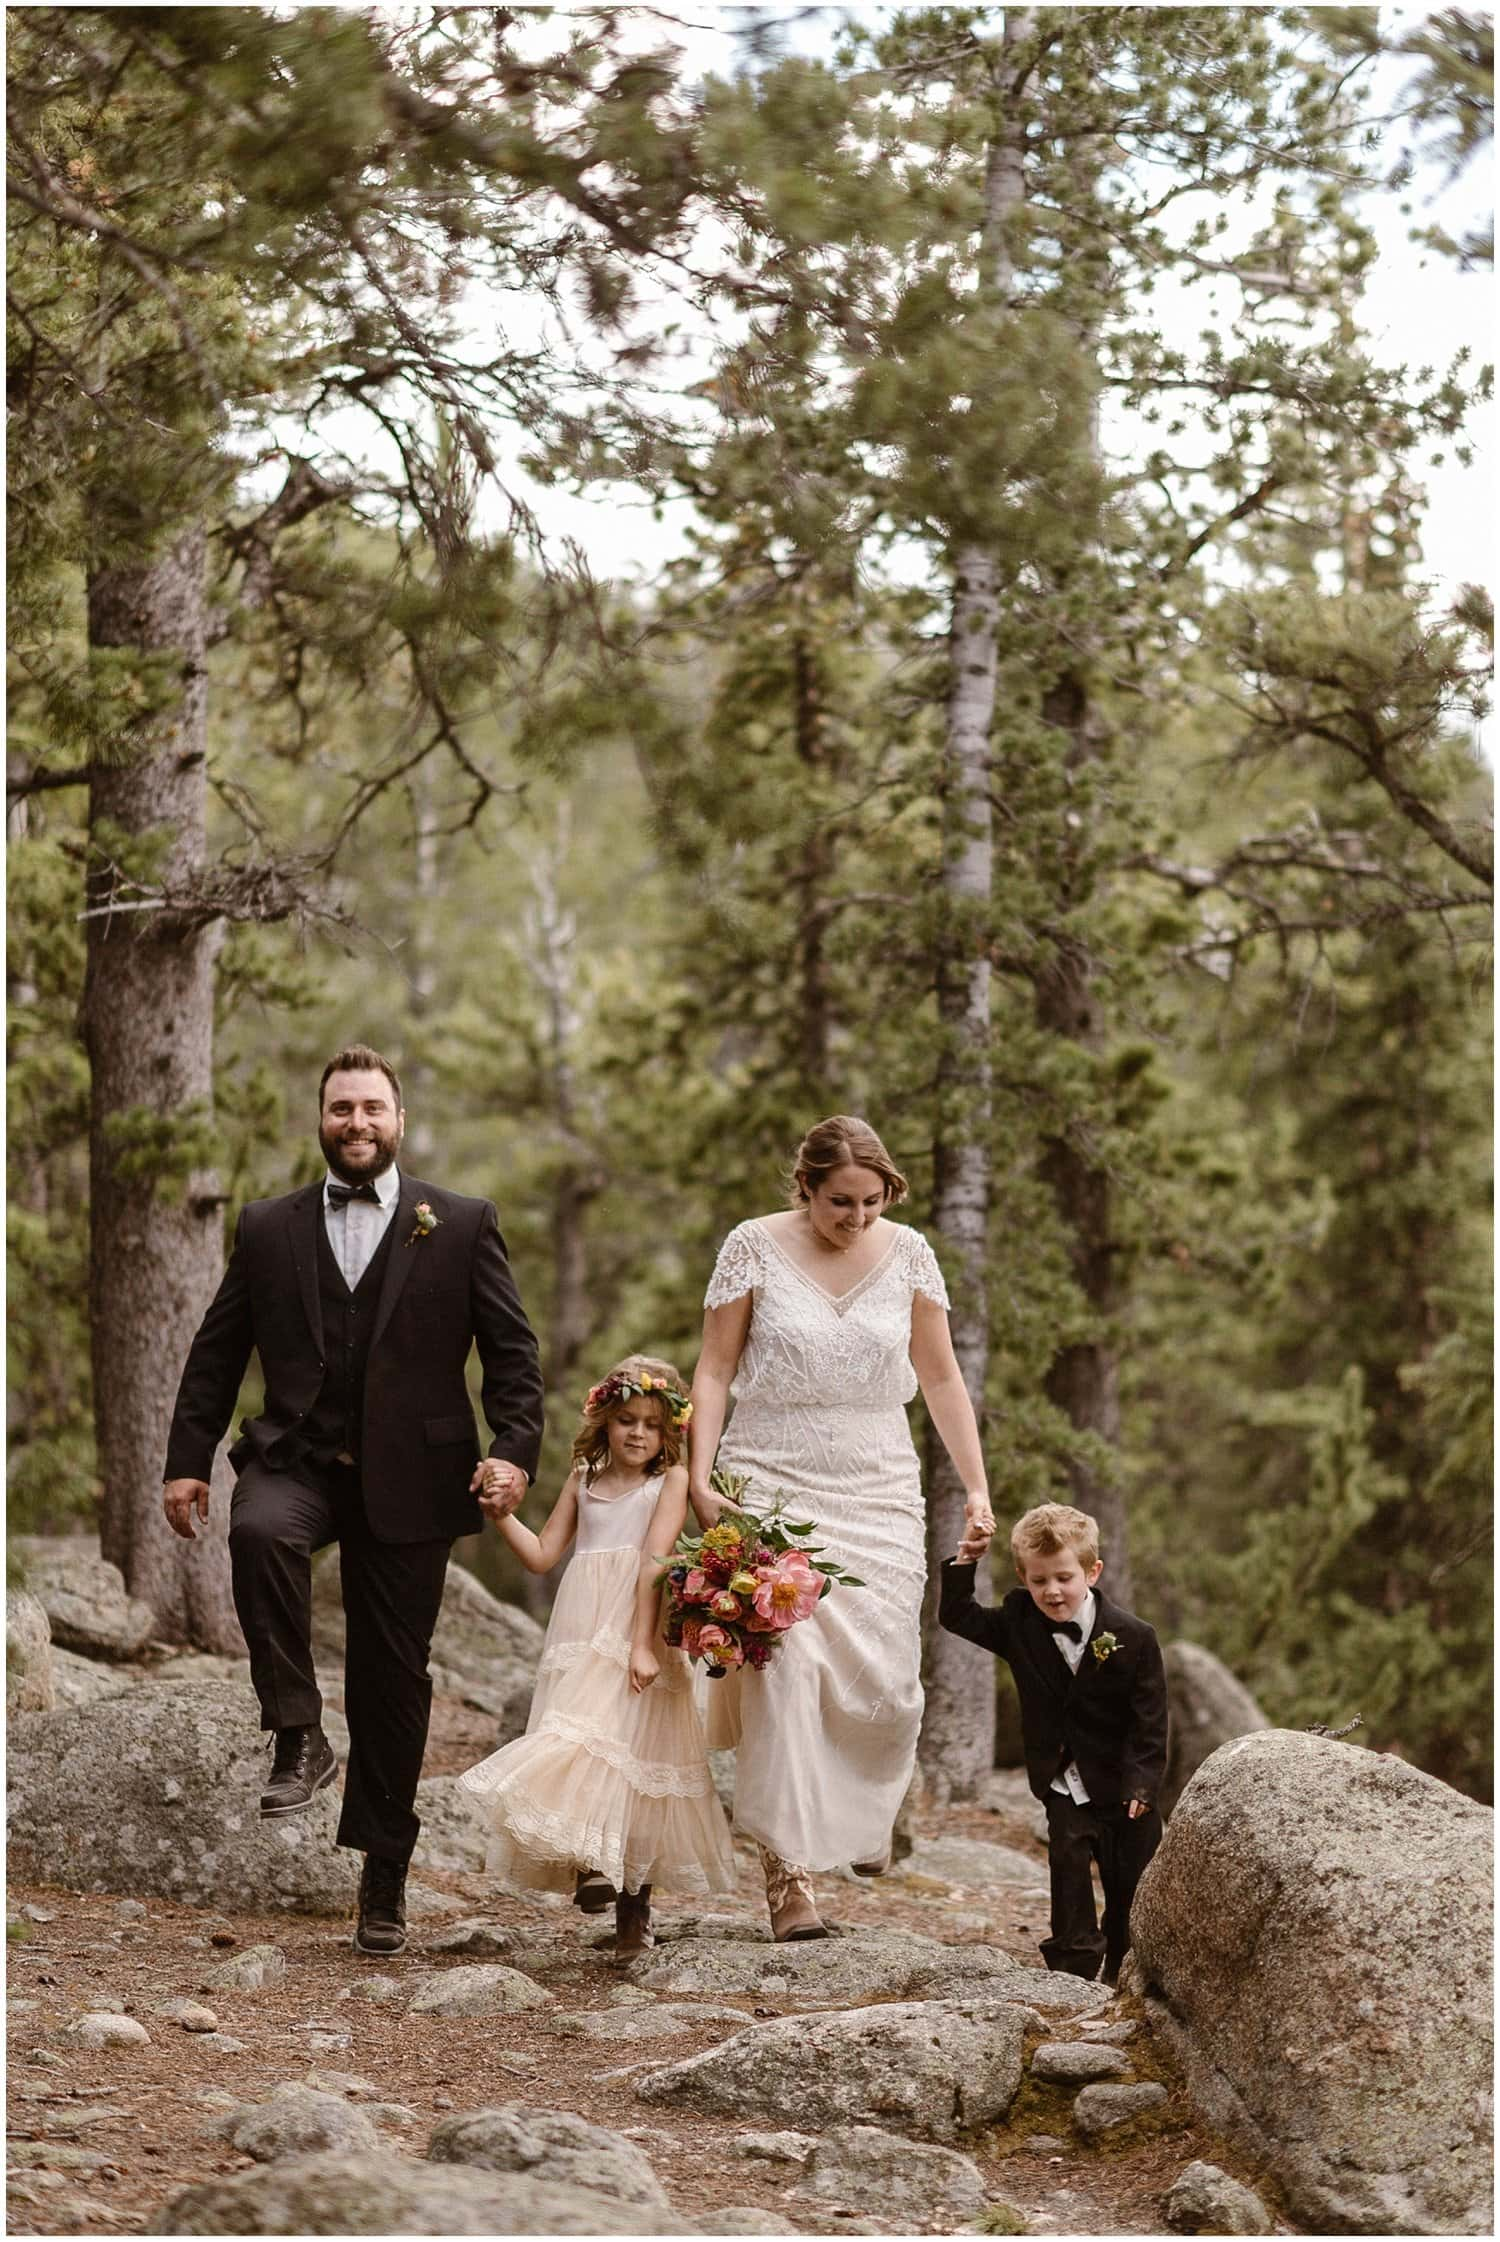 Bride and groom walk hand in hand with their two kids in the forest on their wedding day.